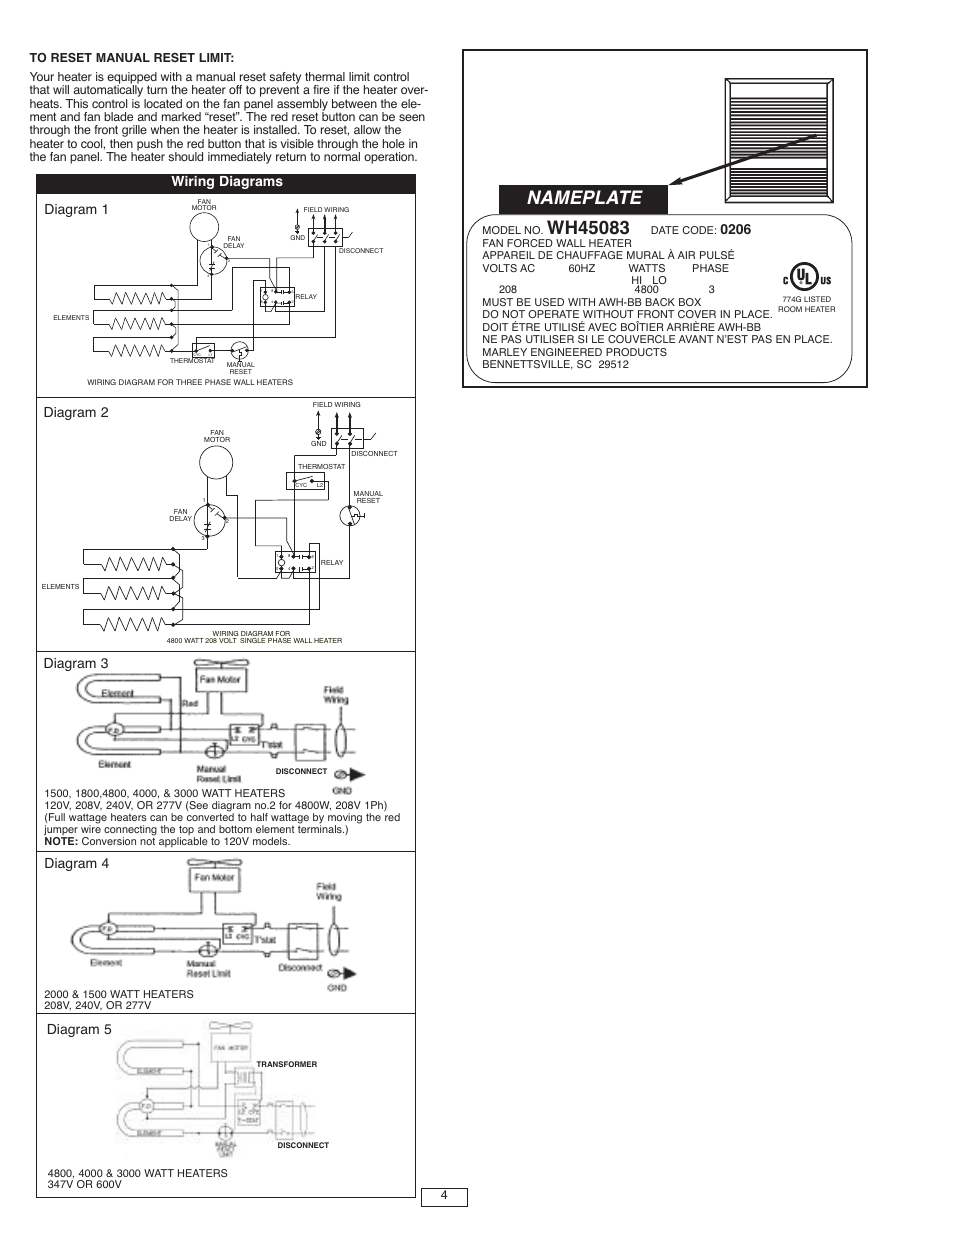 Nameplate Wiring Diagrams Qmark Awh4000 Series Architectural Heavy Duty Wall Heaters User Manual Page 4 15